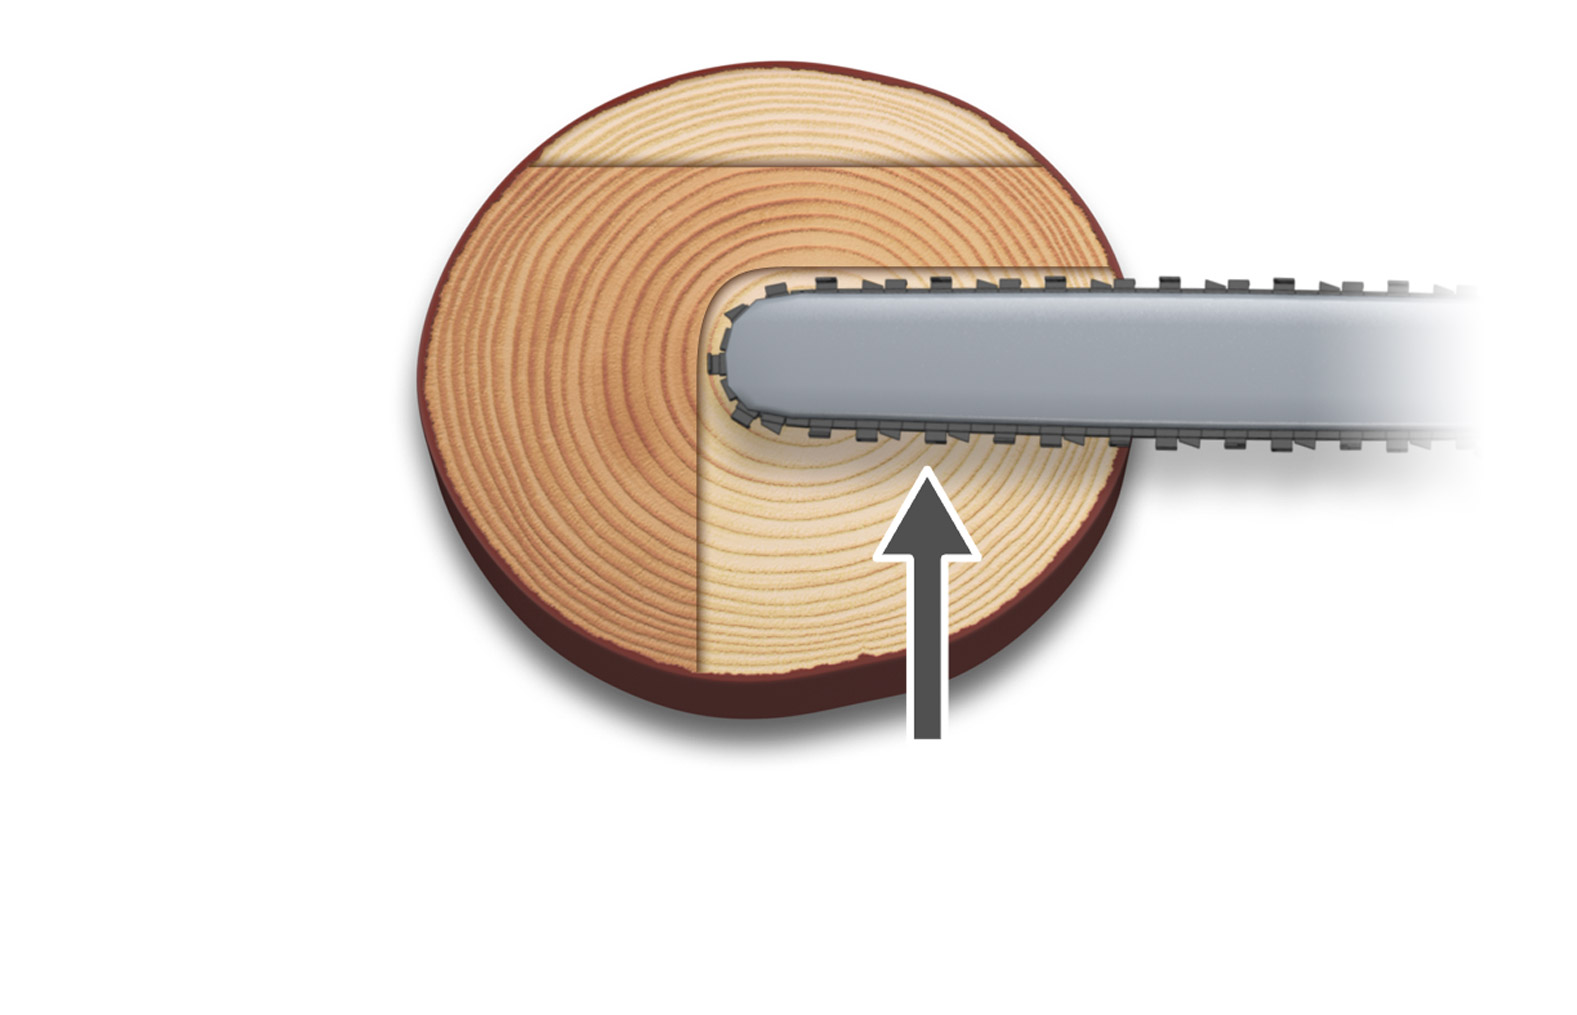 Illustration showing how to cut part of the diameter, which is the first step of the Saved edge method